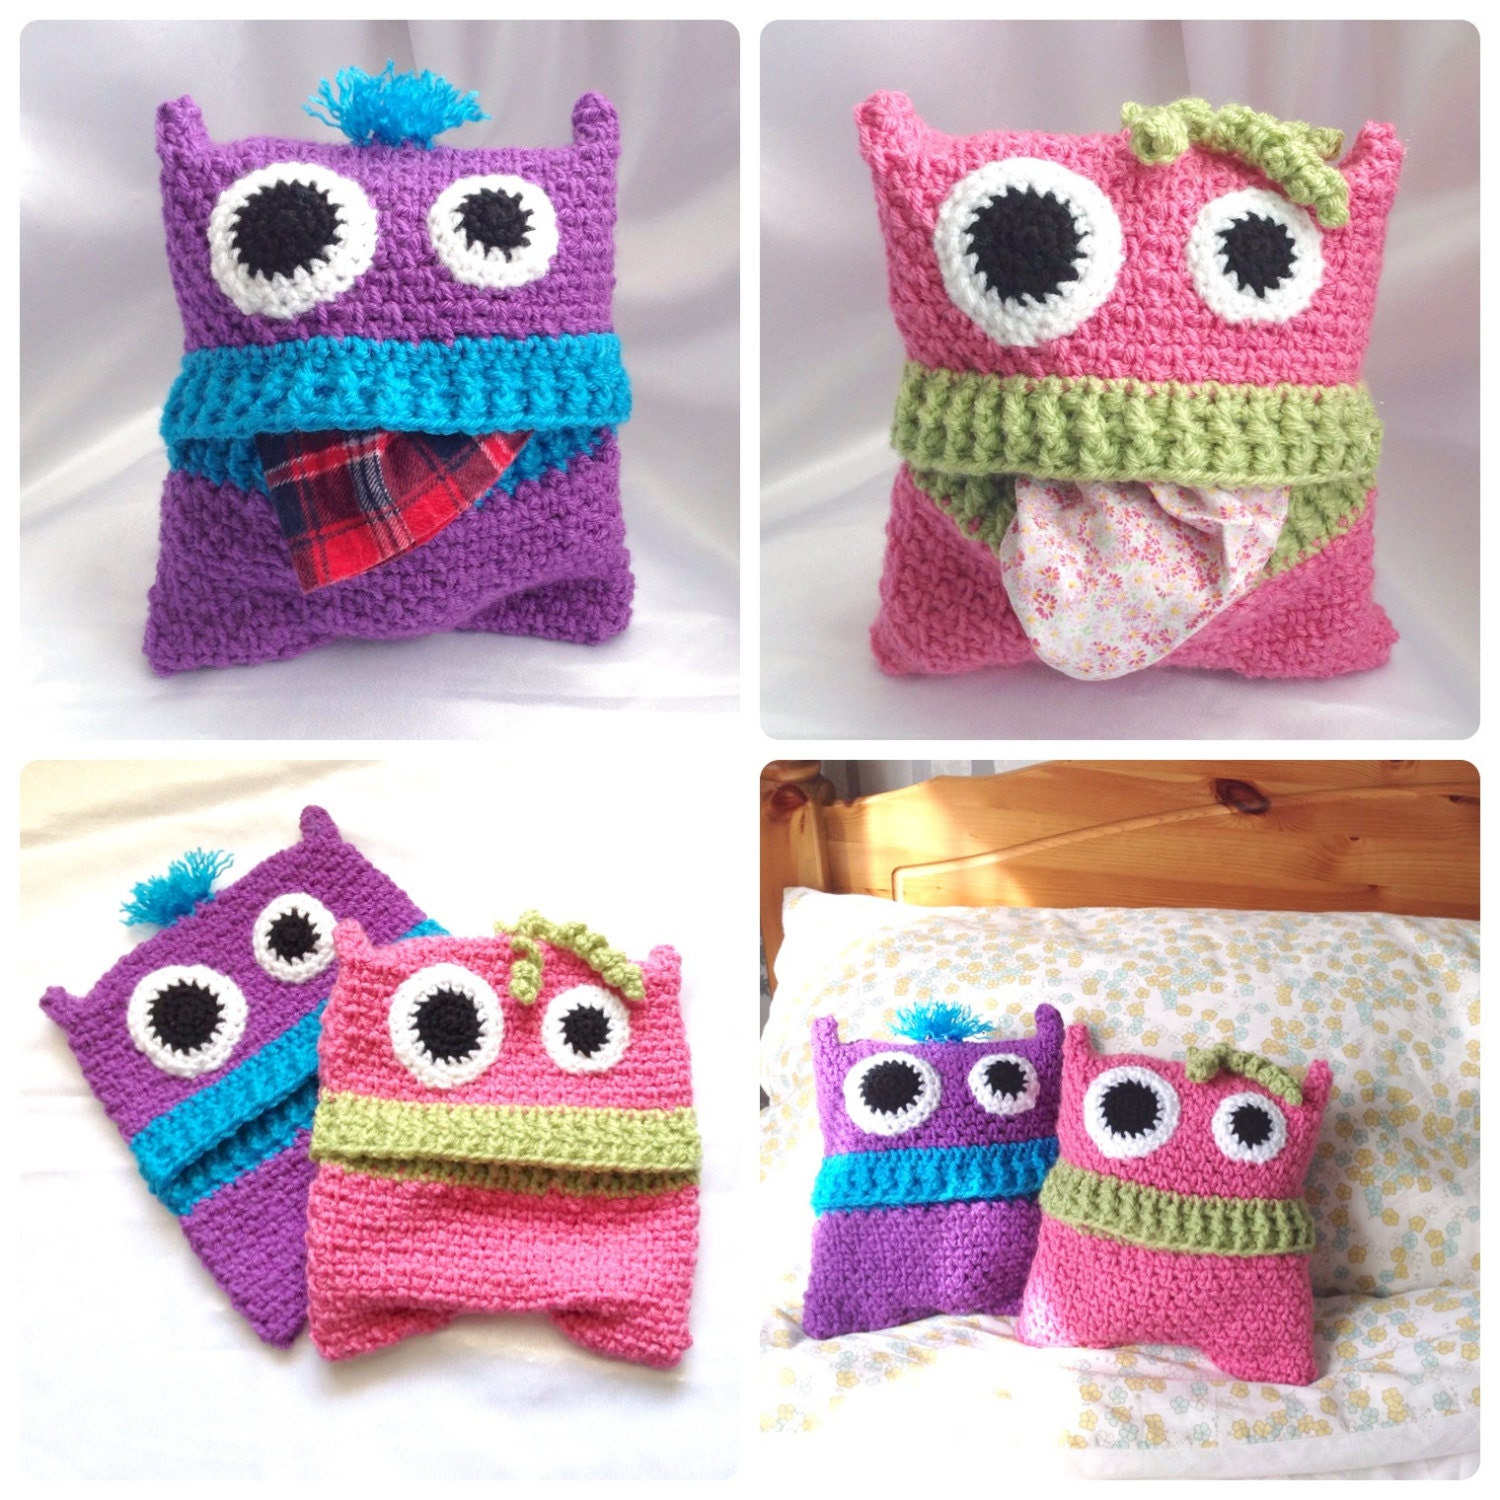 Free Crochet Patterns For Pajama Bags : Pyjama Monsters Pajama Case Crochet PDF by HookedoPatterns